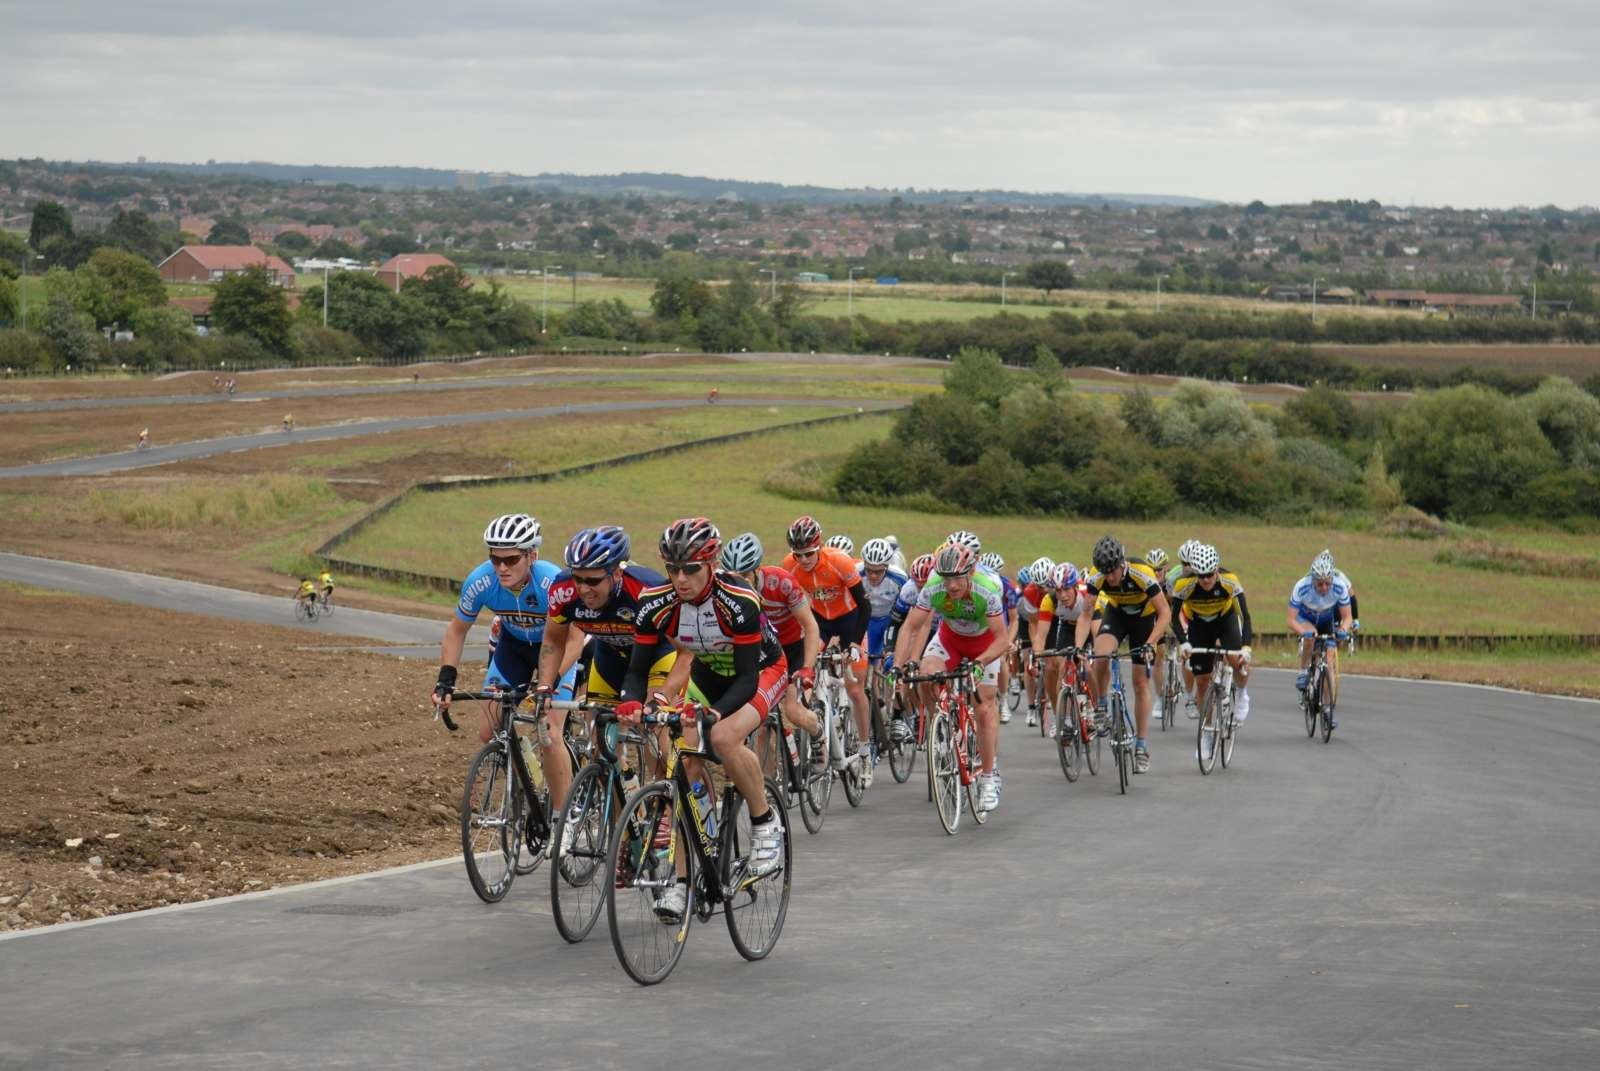 The climb - most of riders needed to use their small chainrings!